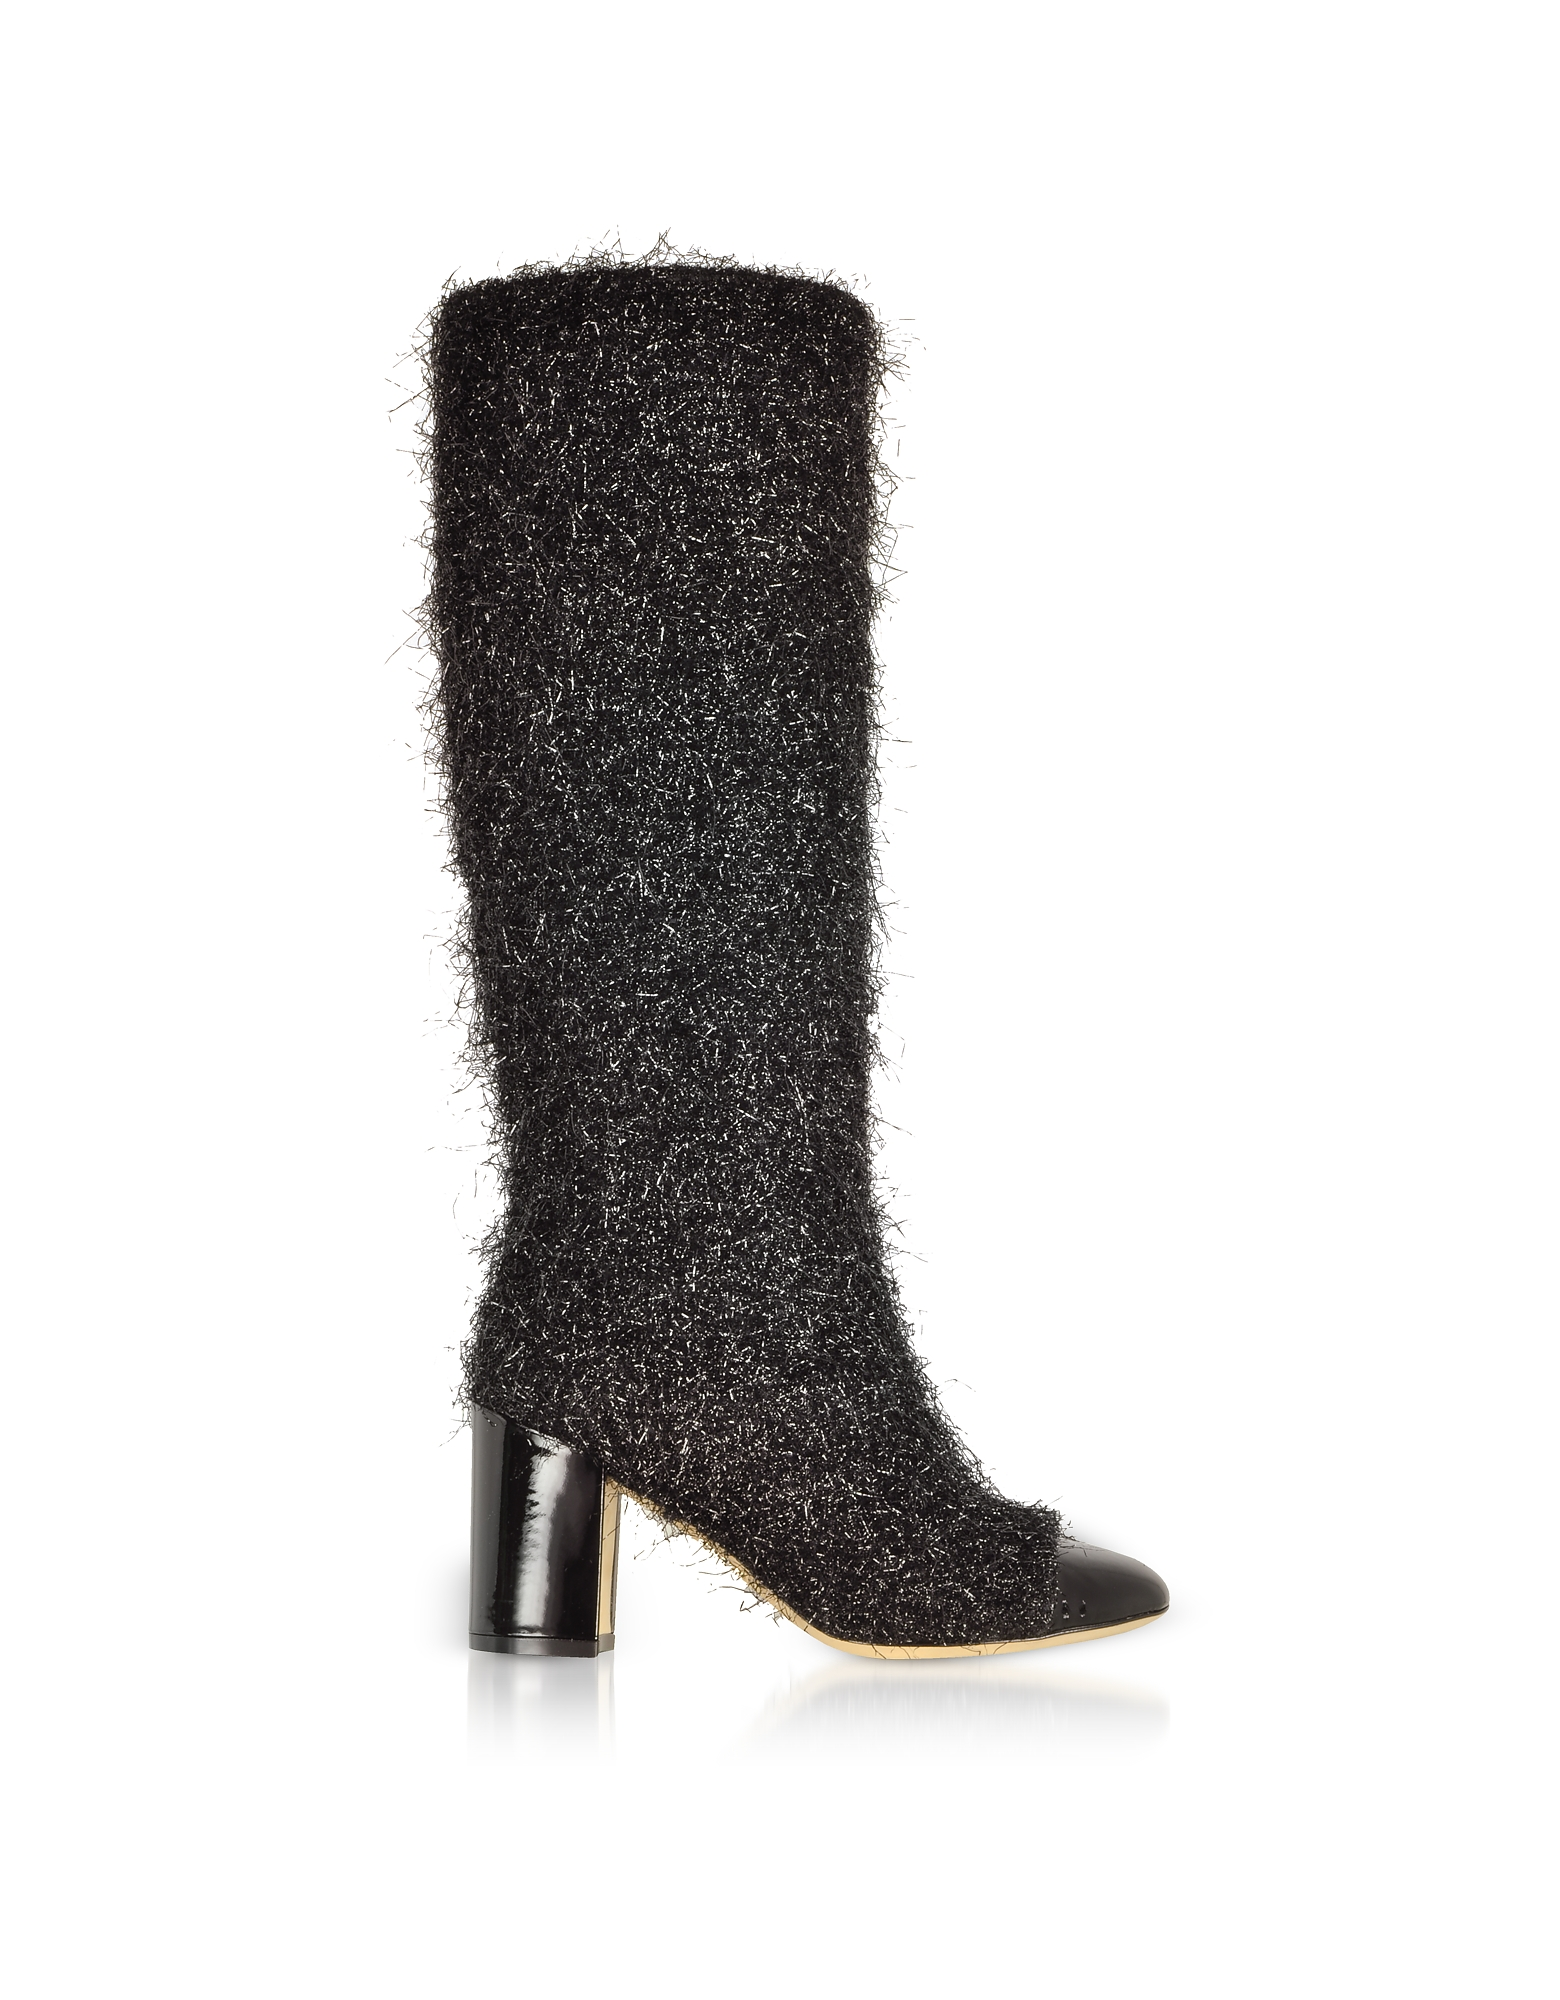 Black Tinsel Fabric and Patent Leather Heel Boots